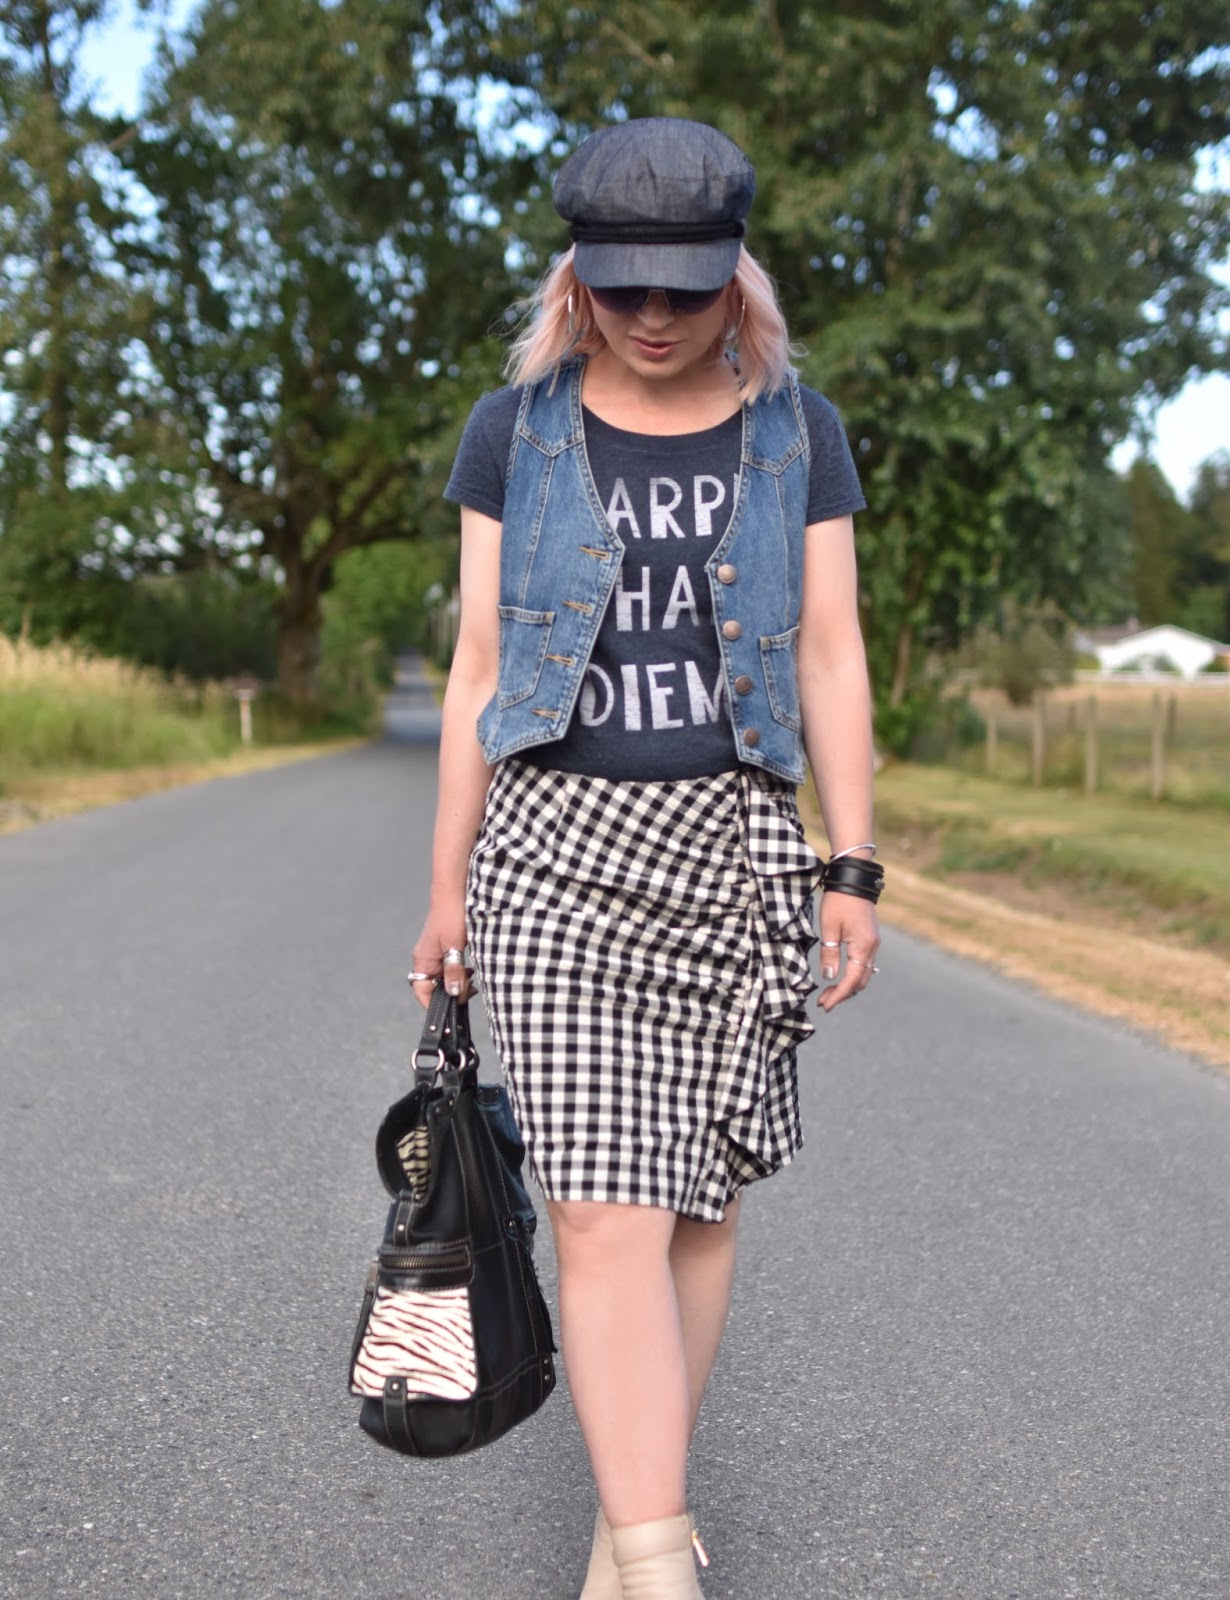 Monika Faulkner personal style inspiration - ruffled gingham skirt, graphic tee, denim vest, baker boy cap, sunglasses, Fossil bag